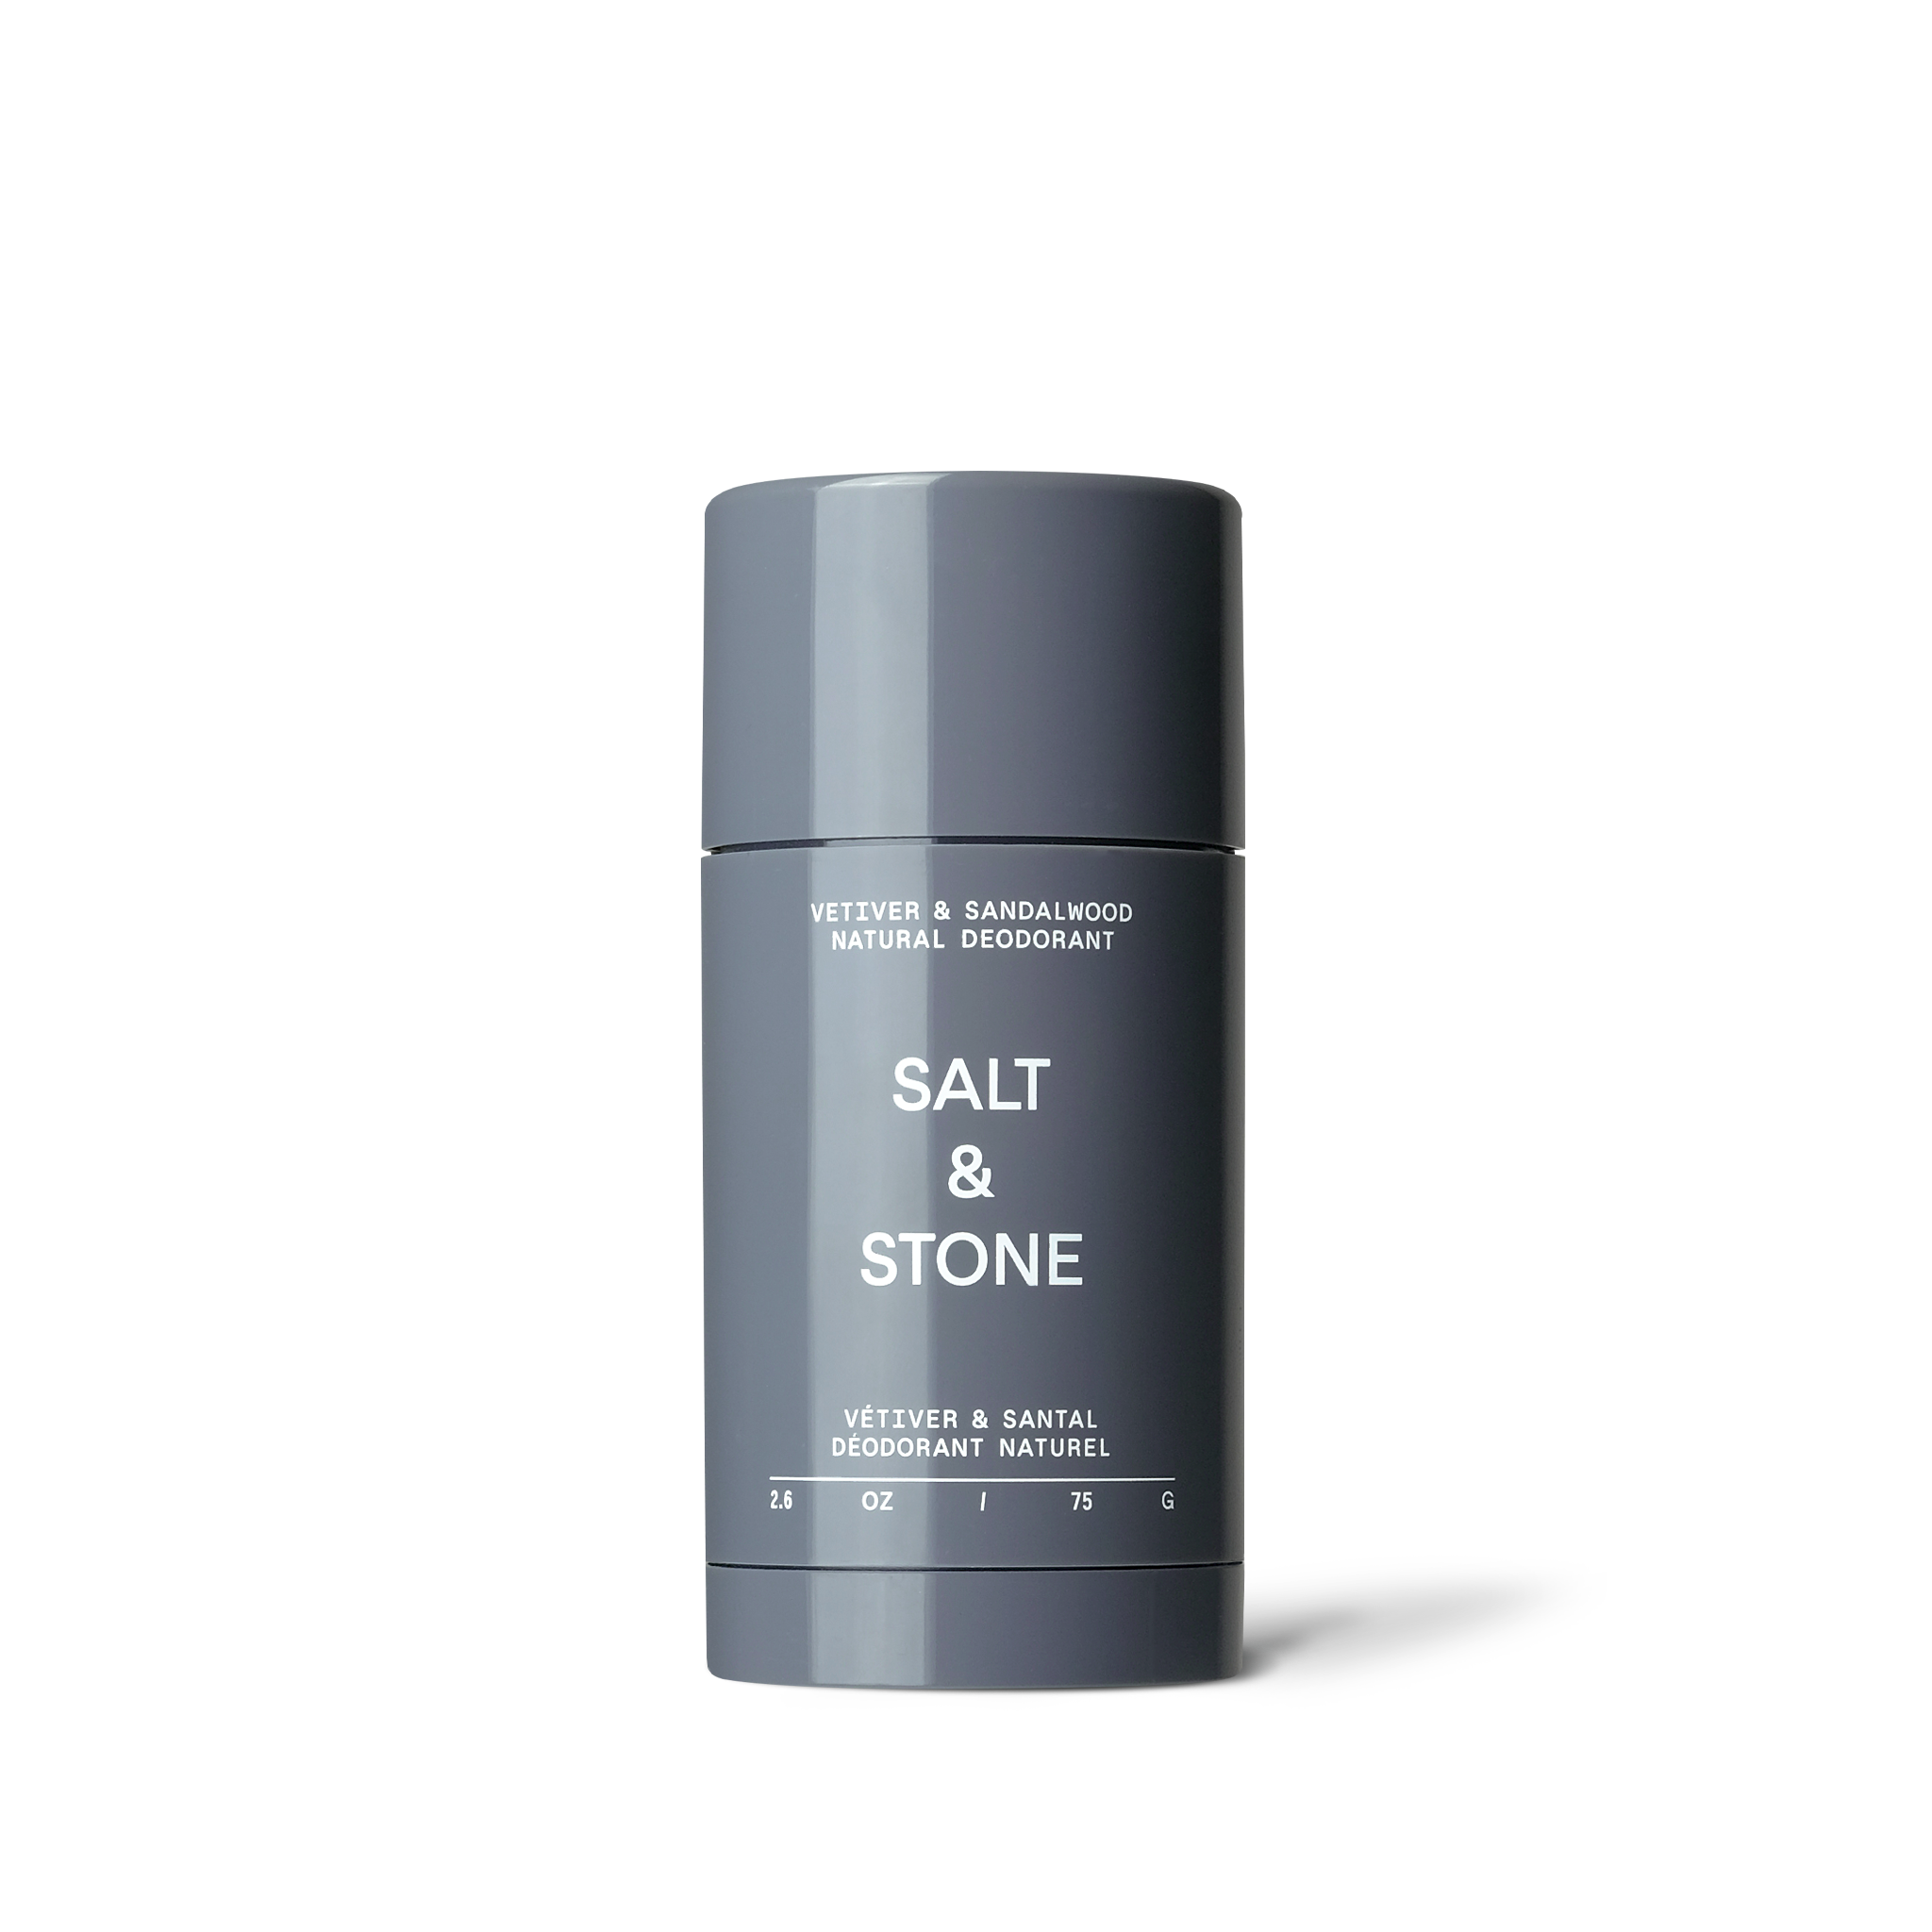 Salt & Stone Vetiver & Sandalwood Deodorant - Formula Nº 2 (Sensitive Skin)